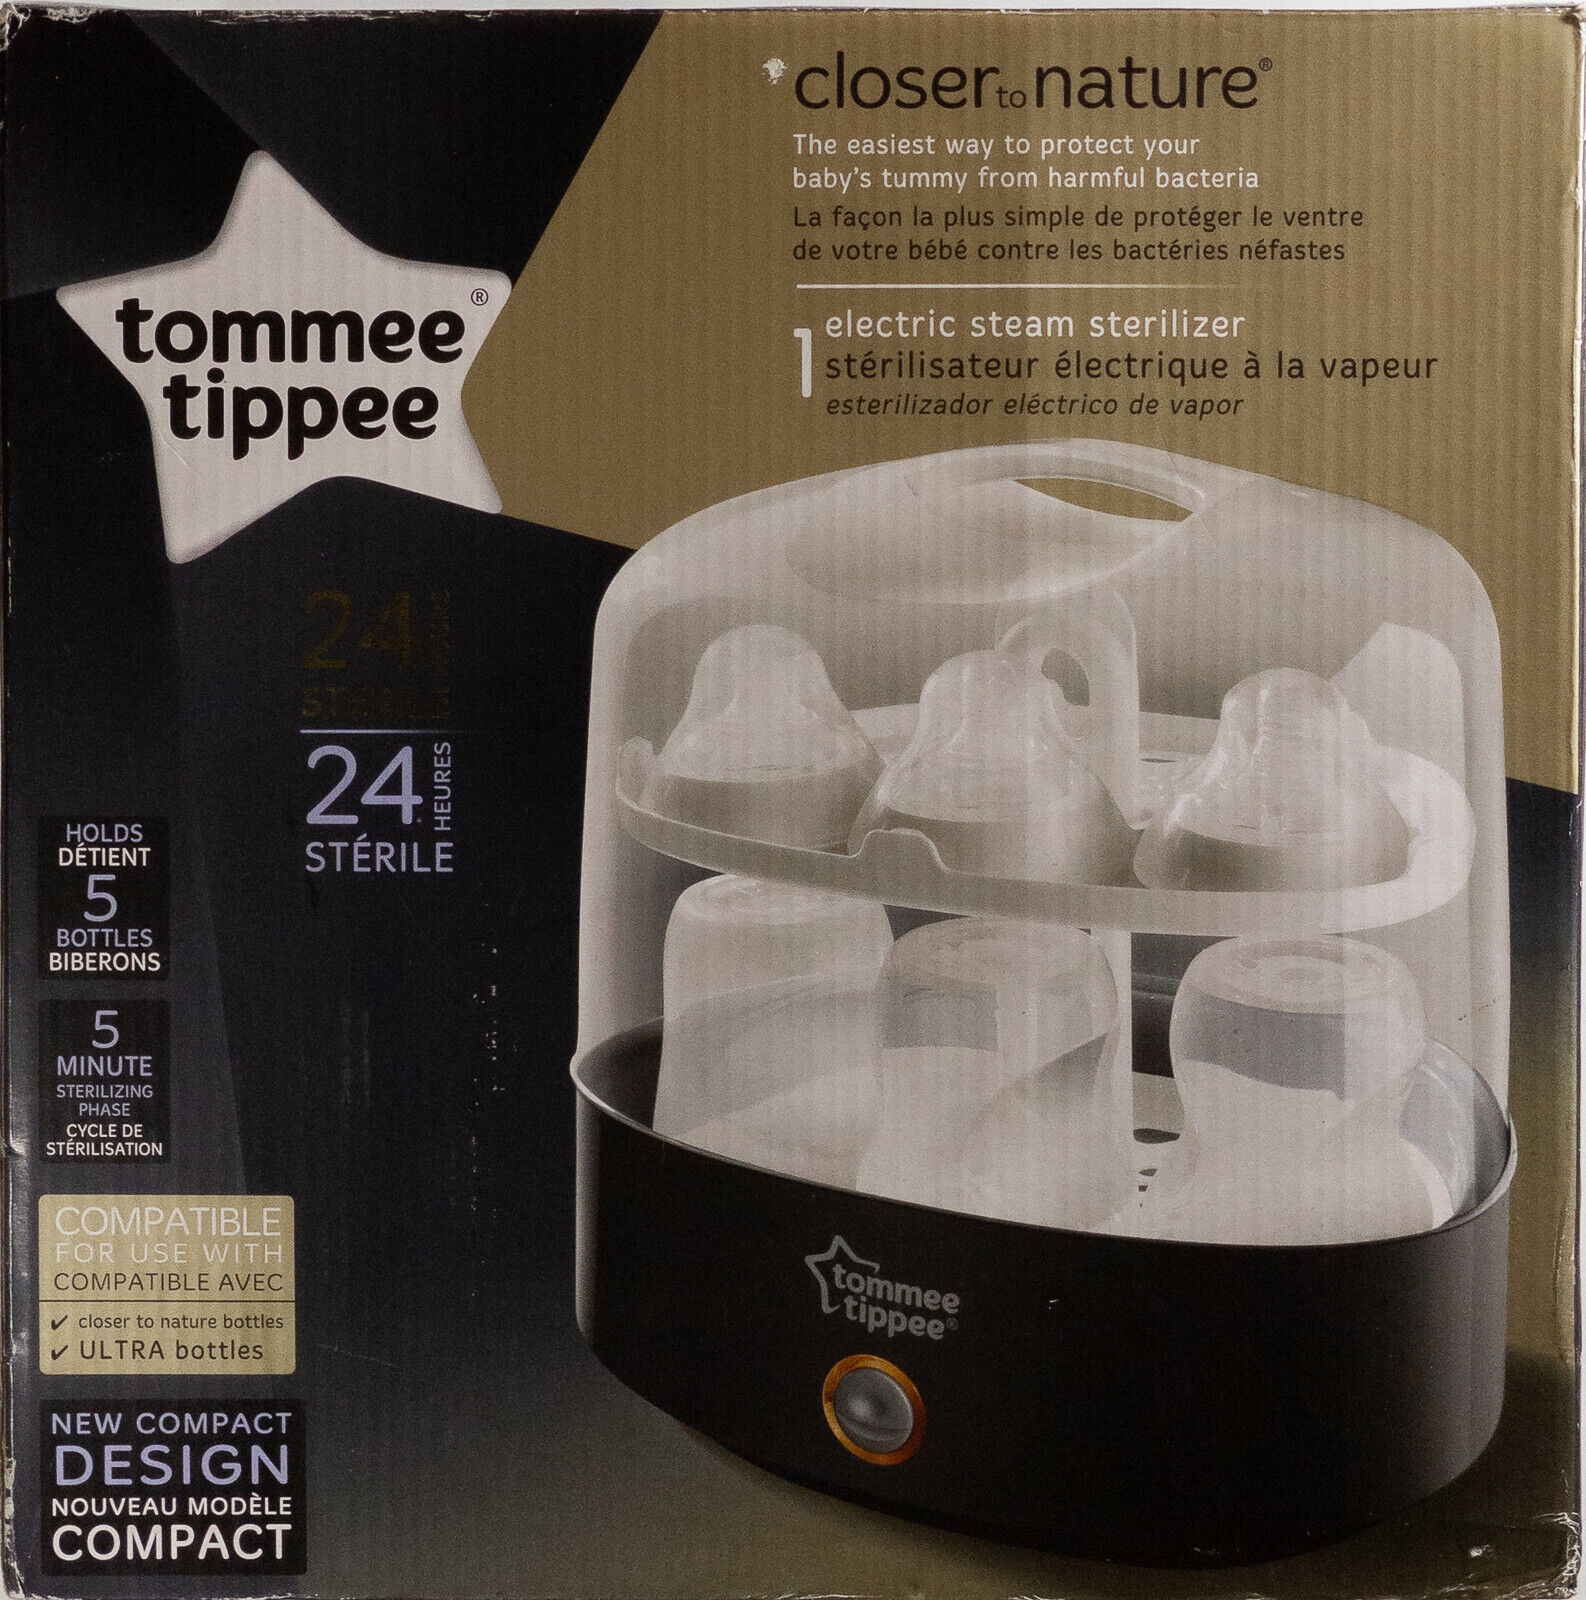 Tommee Tippee Closer to Nature Electric Steam Sterilizer - B